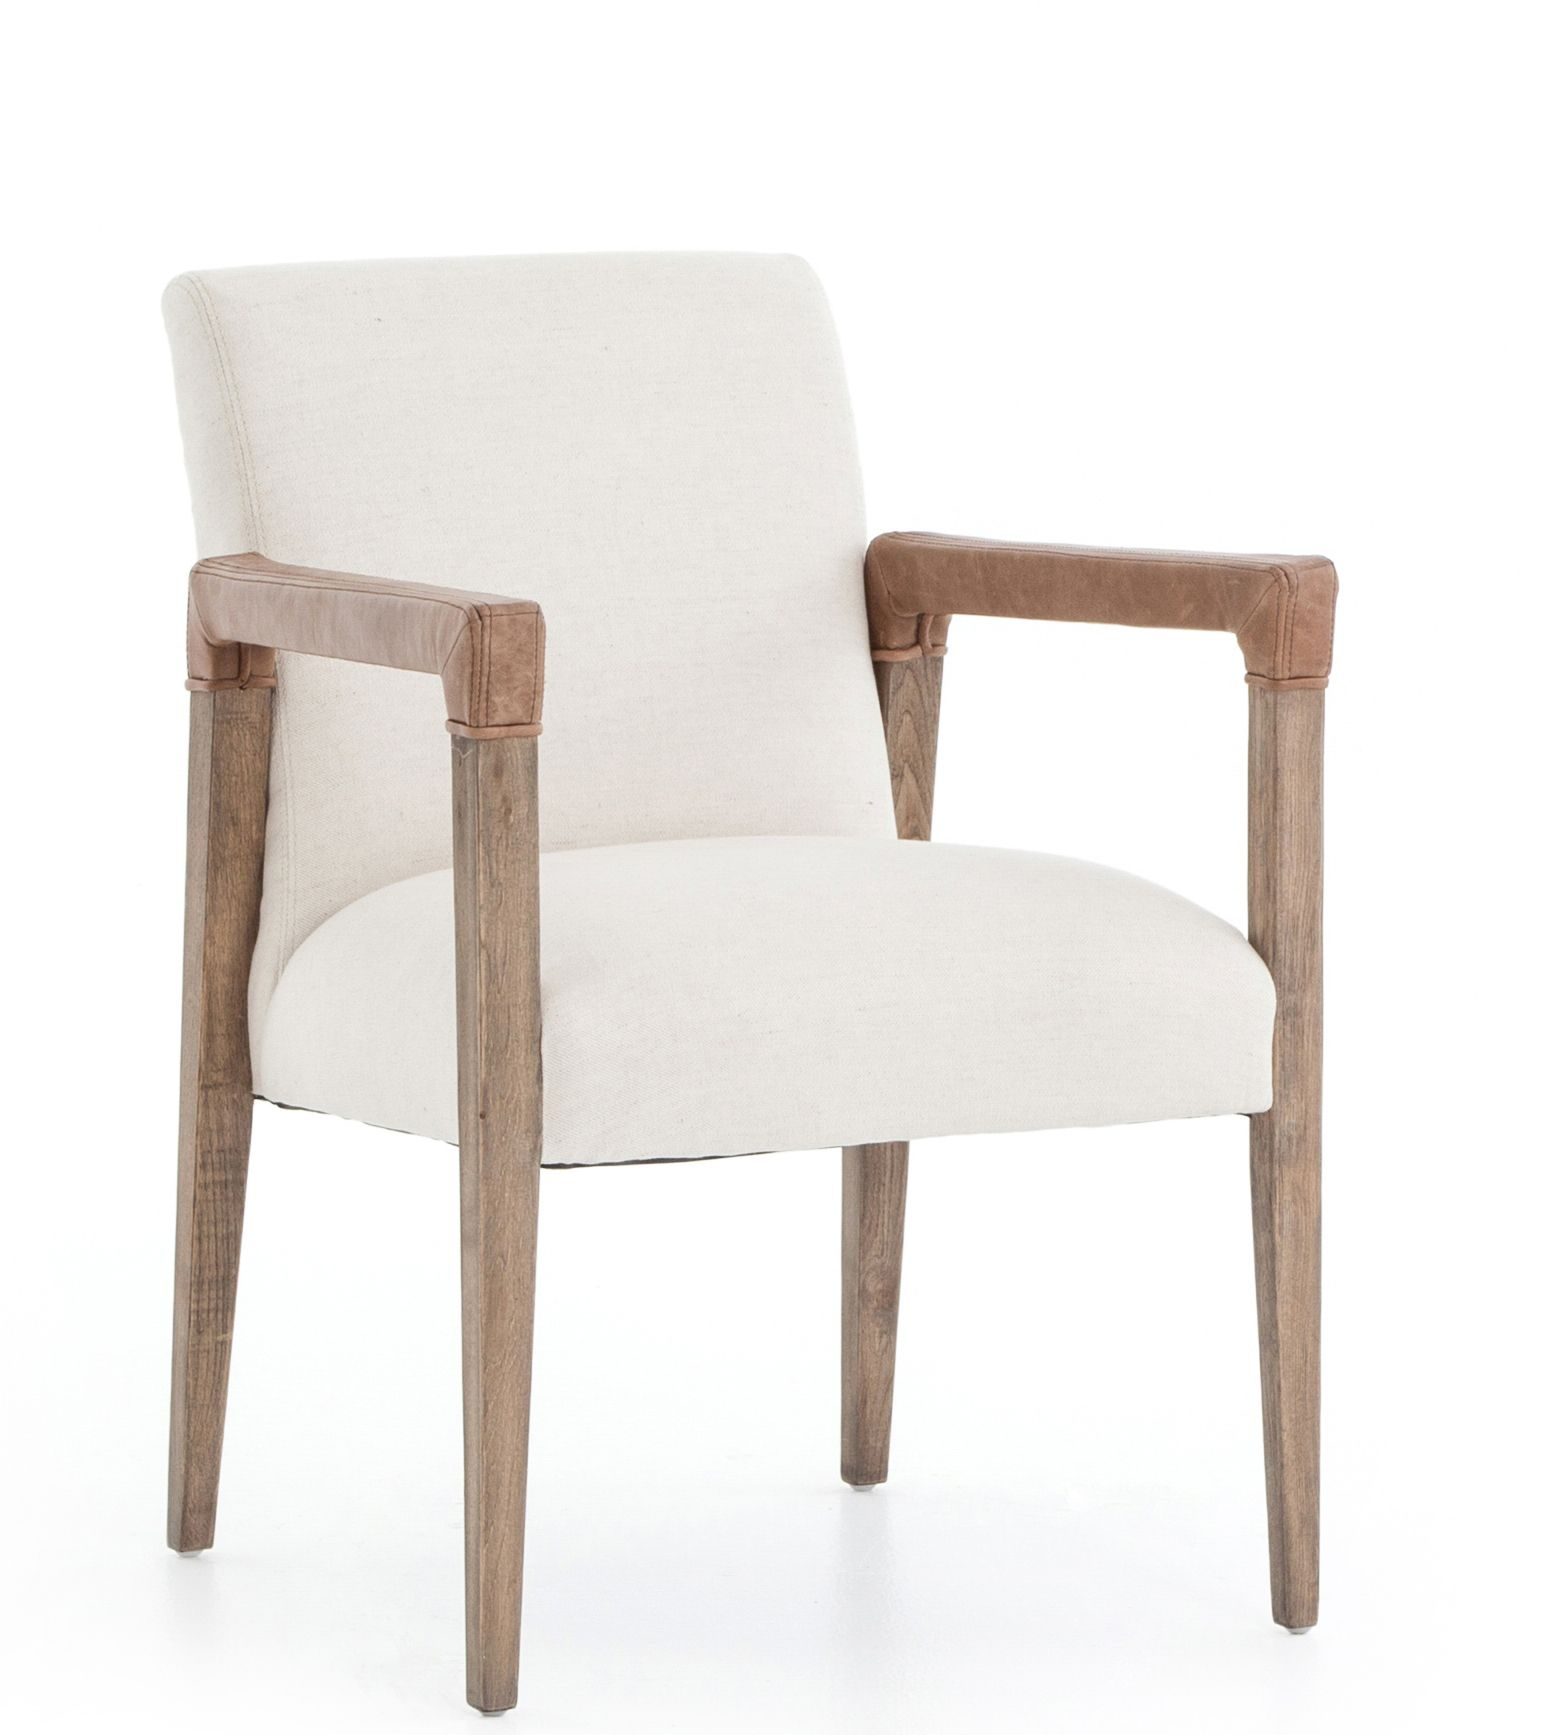 10 Most Popular Side Chairs With Arms For Living Room